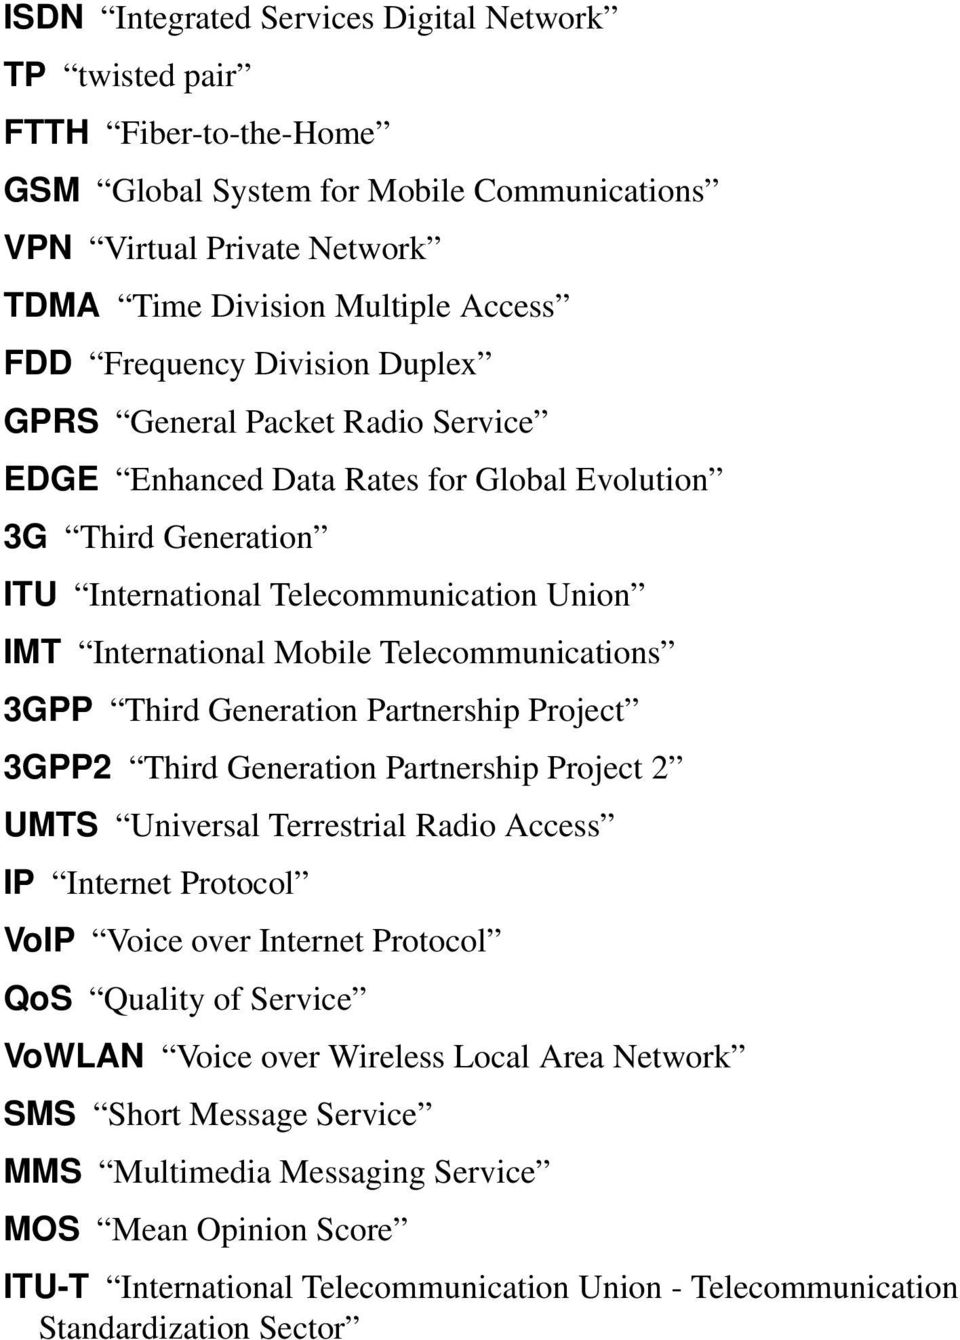 Telecommunications 3GPP Third Generation Partnership Project 3GPP2 Third Generation Partnership Project 2 UMTS Universal Terrestrial Radio Access IP Internet Protocol VoIP Voice over Internet